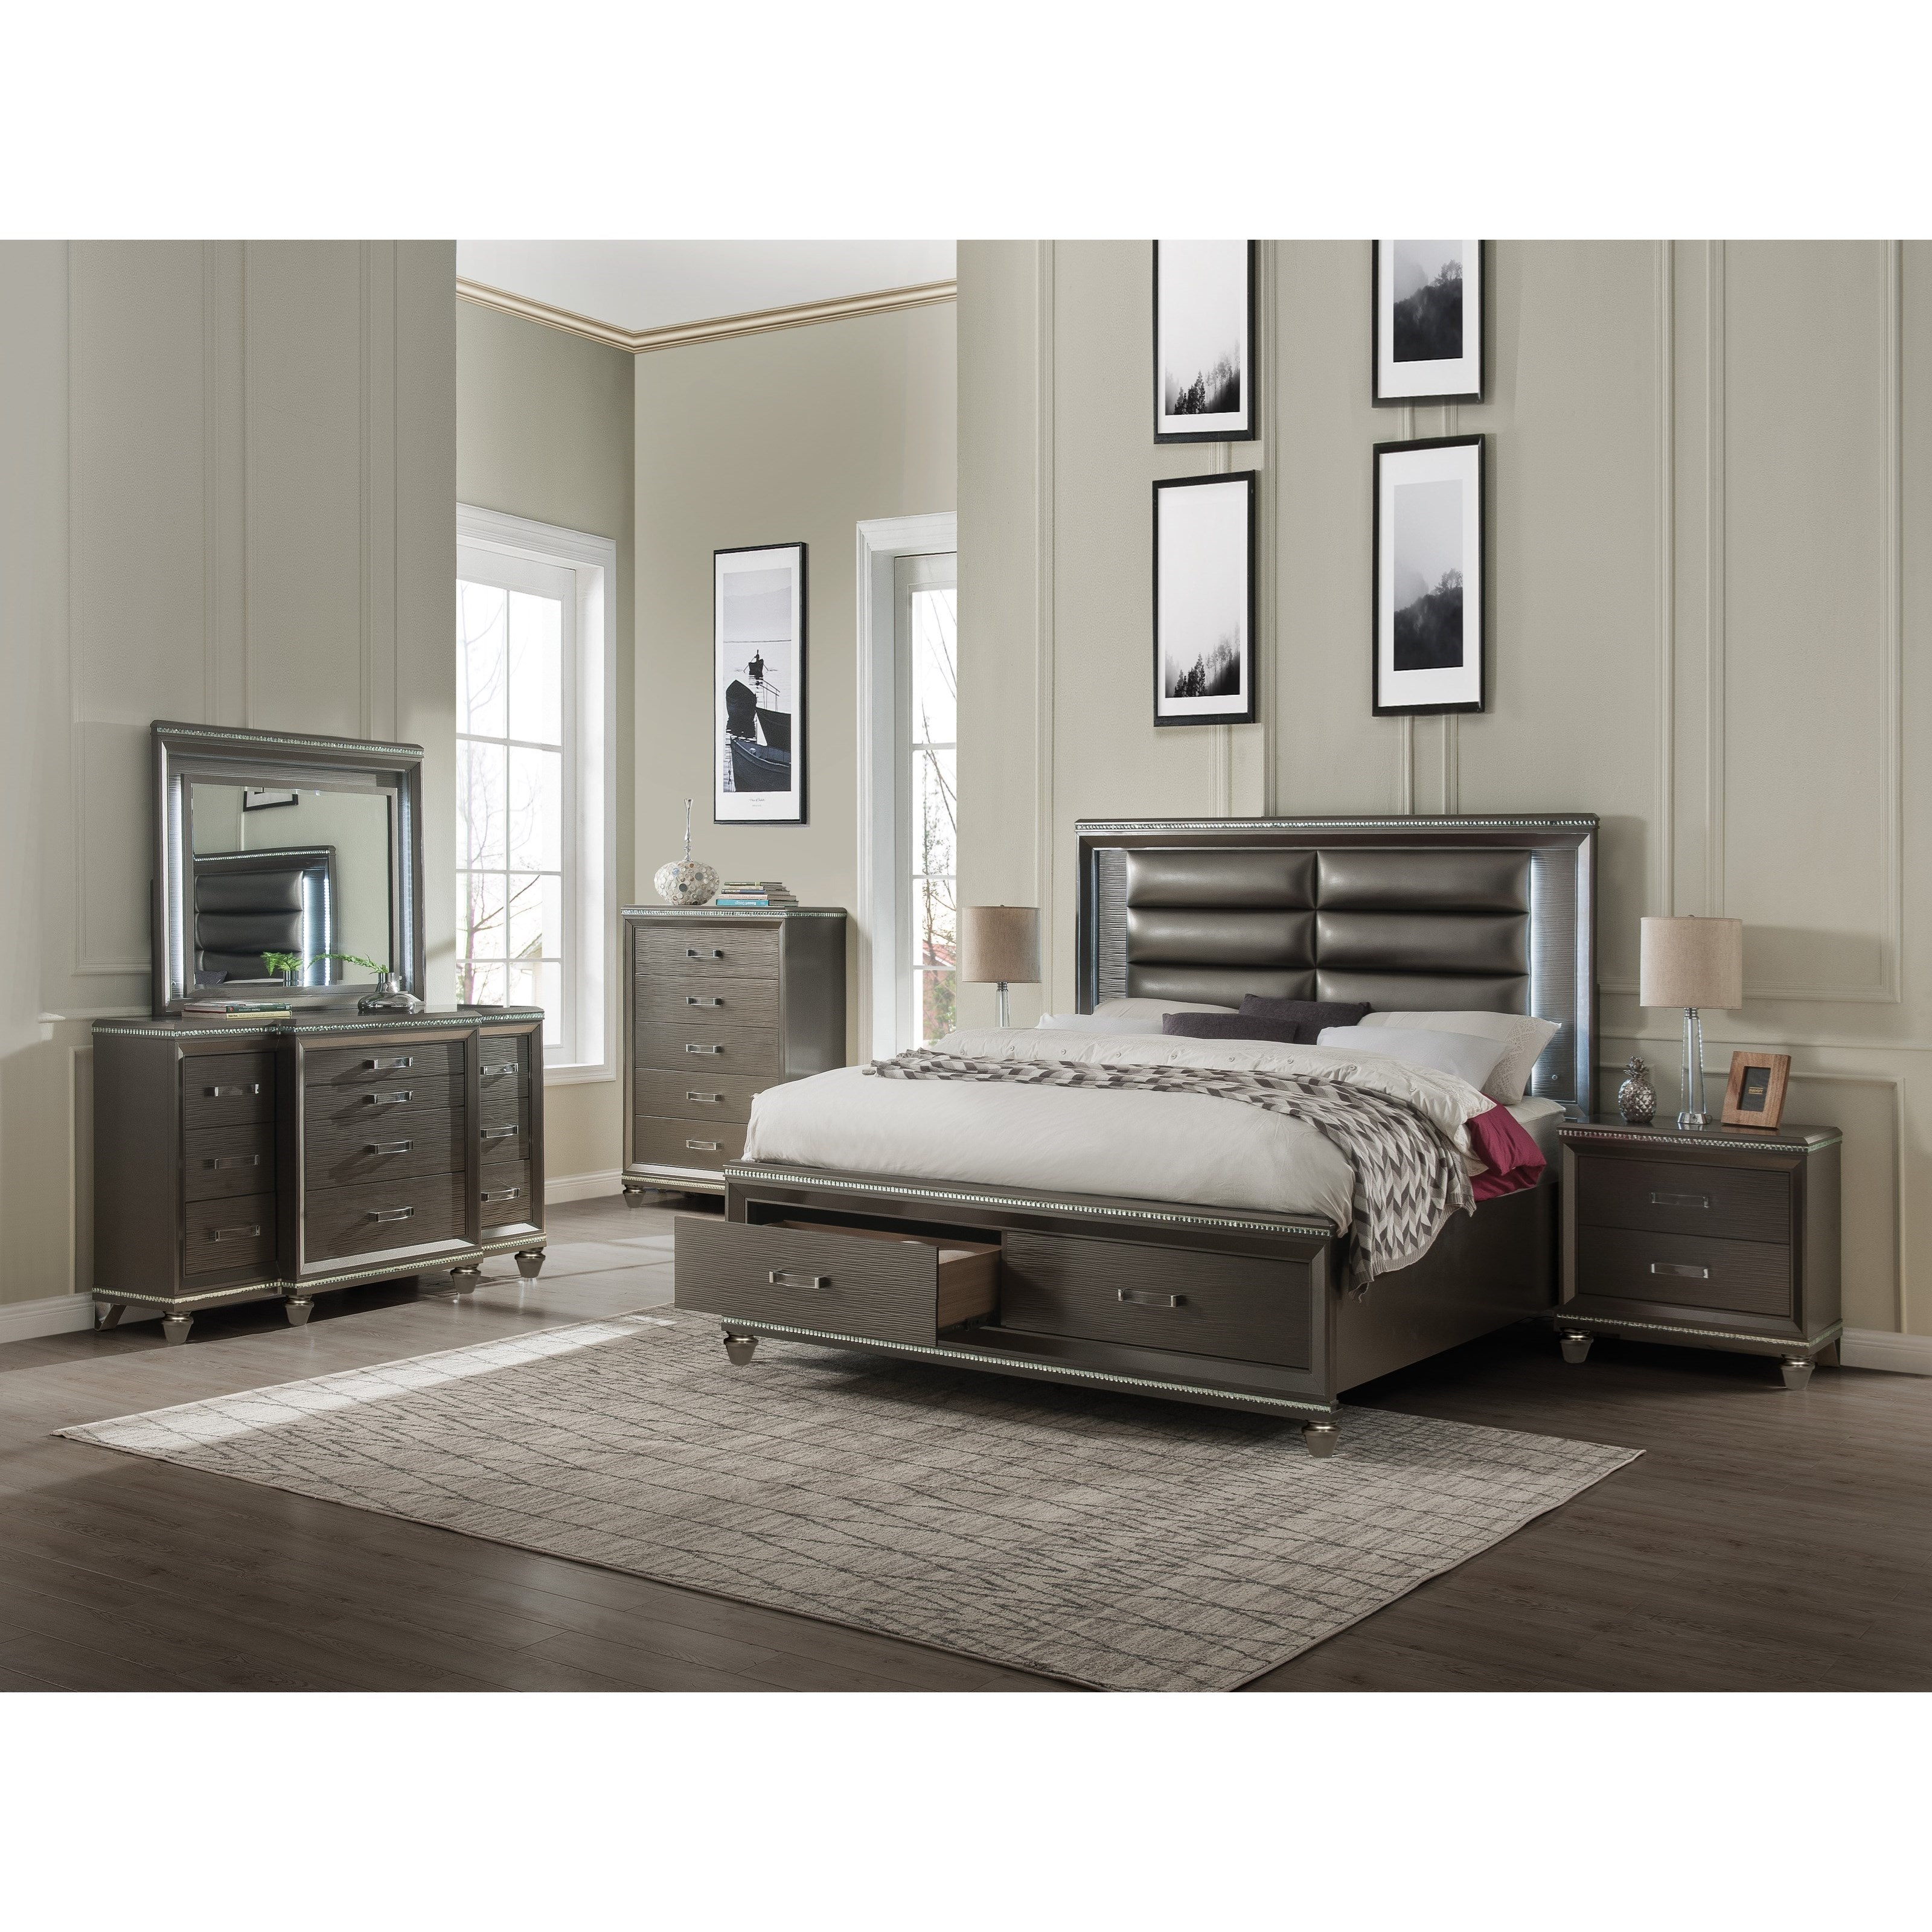 Sadie Queen Bedroom Group by Acme Furniture at Carolina Direct